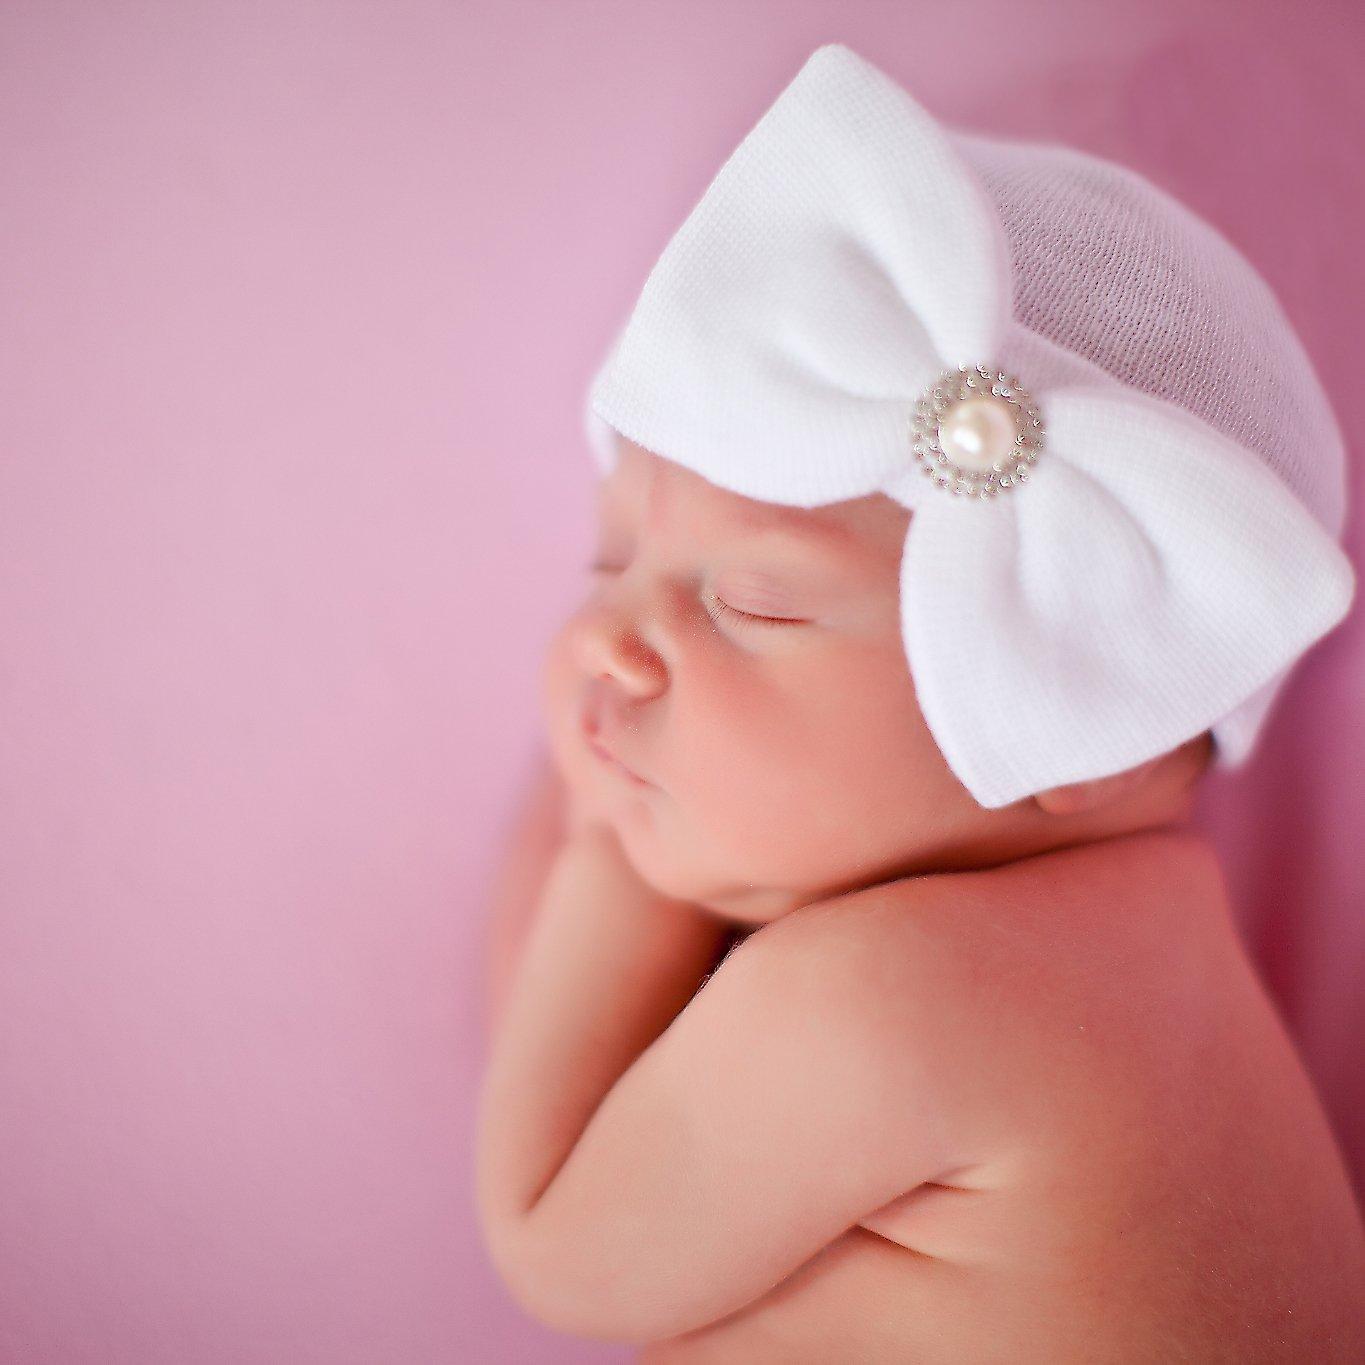 75b4728657a Amazon.com  Melondipity s White Vintage Pearl and Rhinestone Newborn Girl  Hospital Hat -White  Clothing